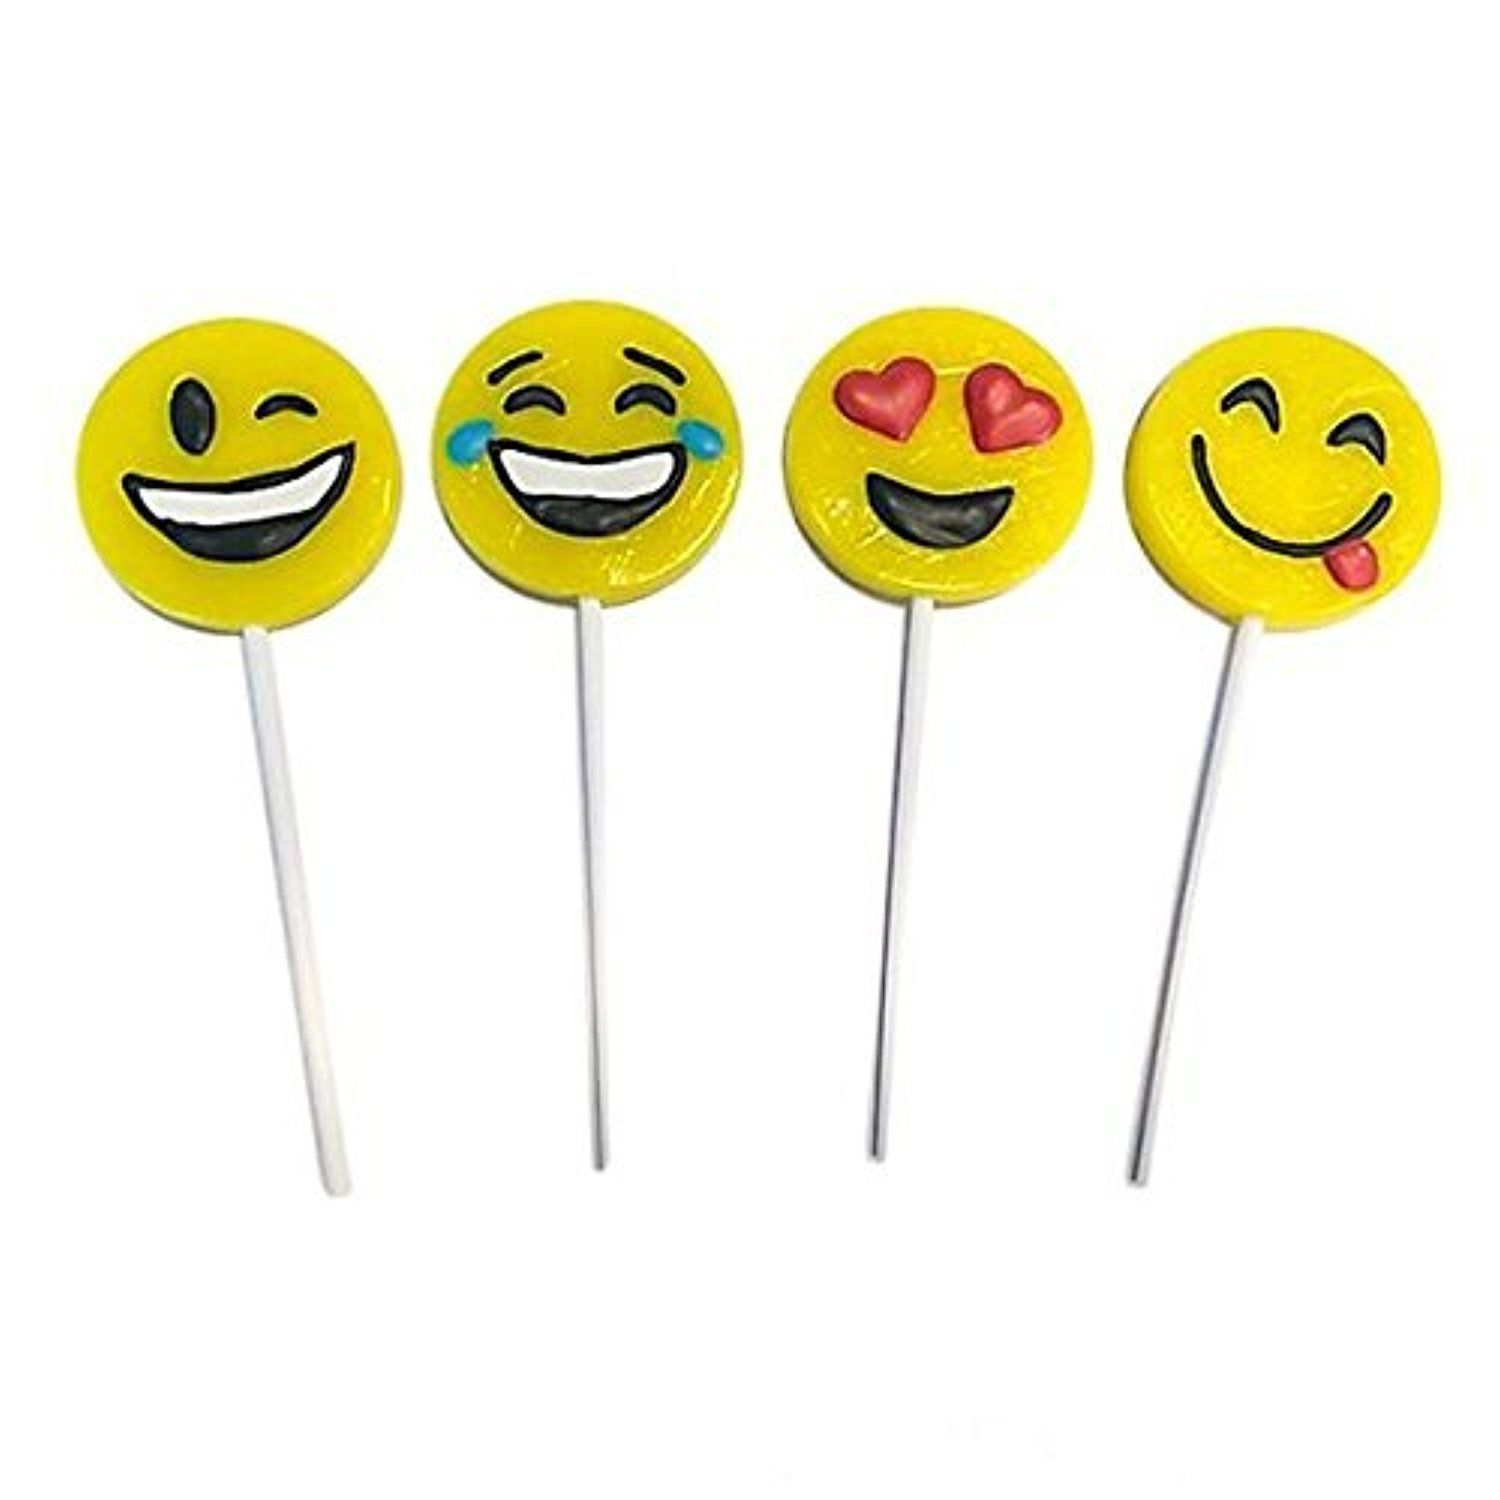 Yellow Emoji Smile Face Lollipop Sucker 1 Dozen By Rin Awesome Products Selected By Anna Churchill Emoji Lollipop Emoji Theme Party